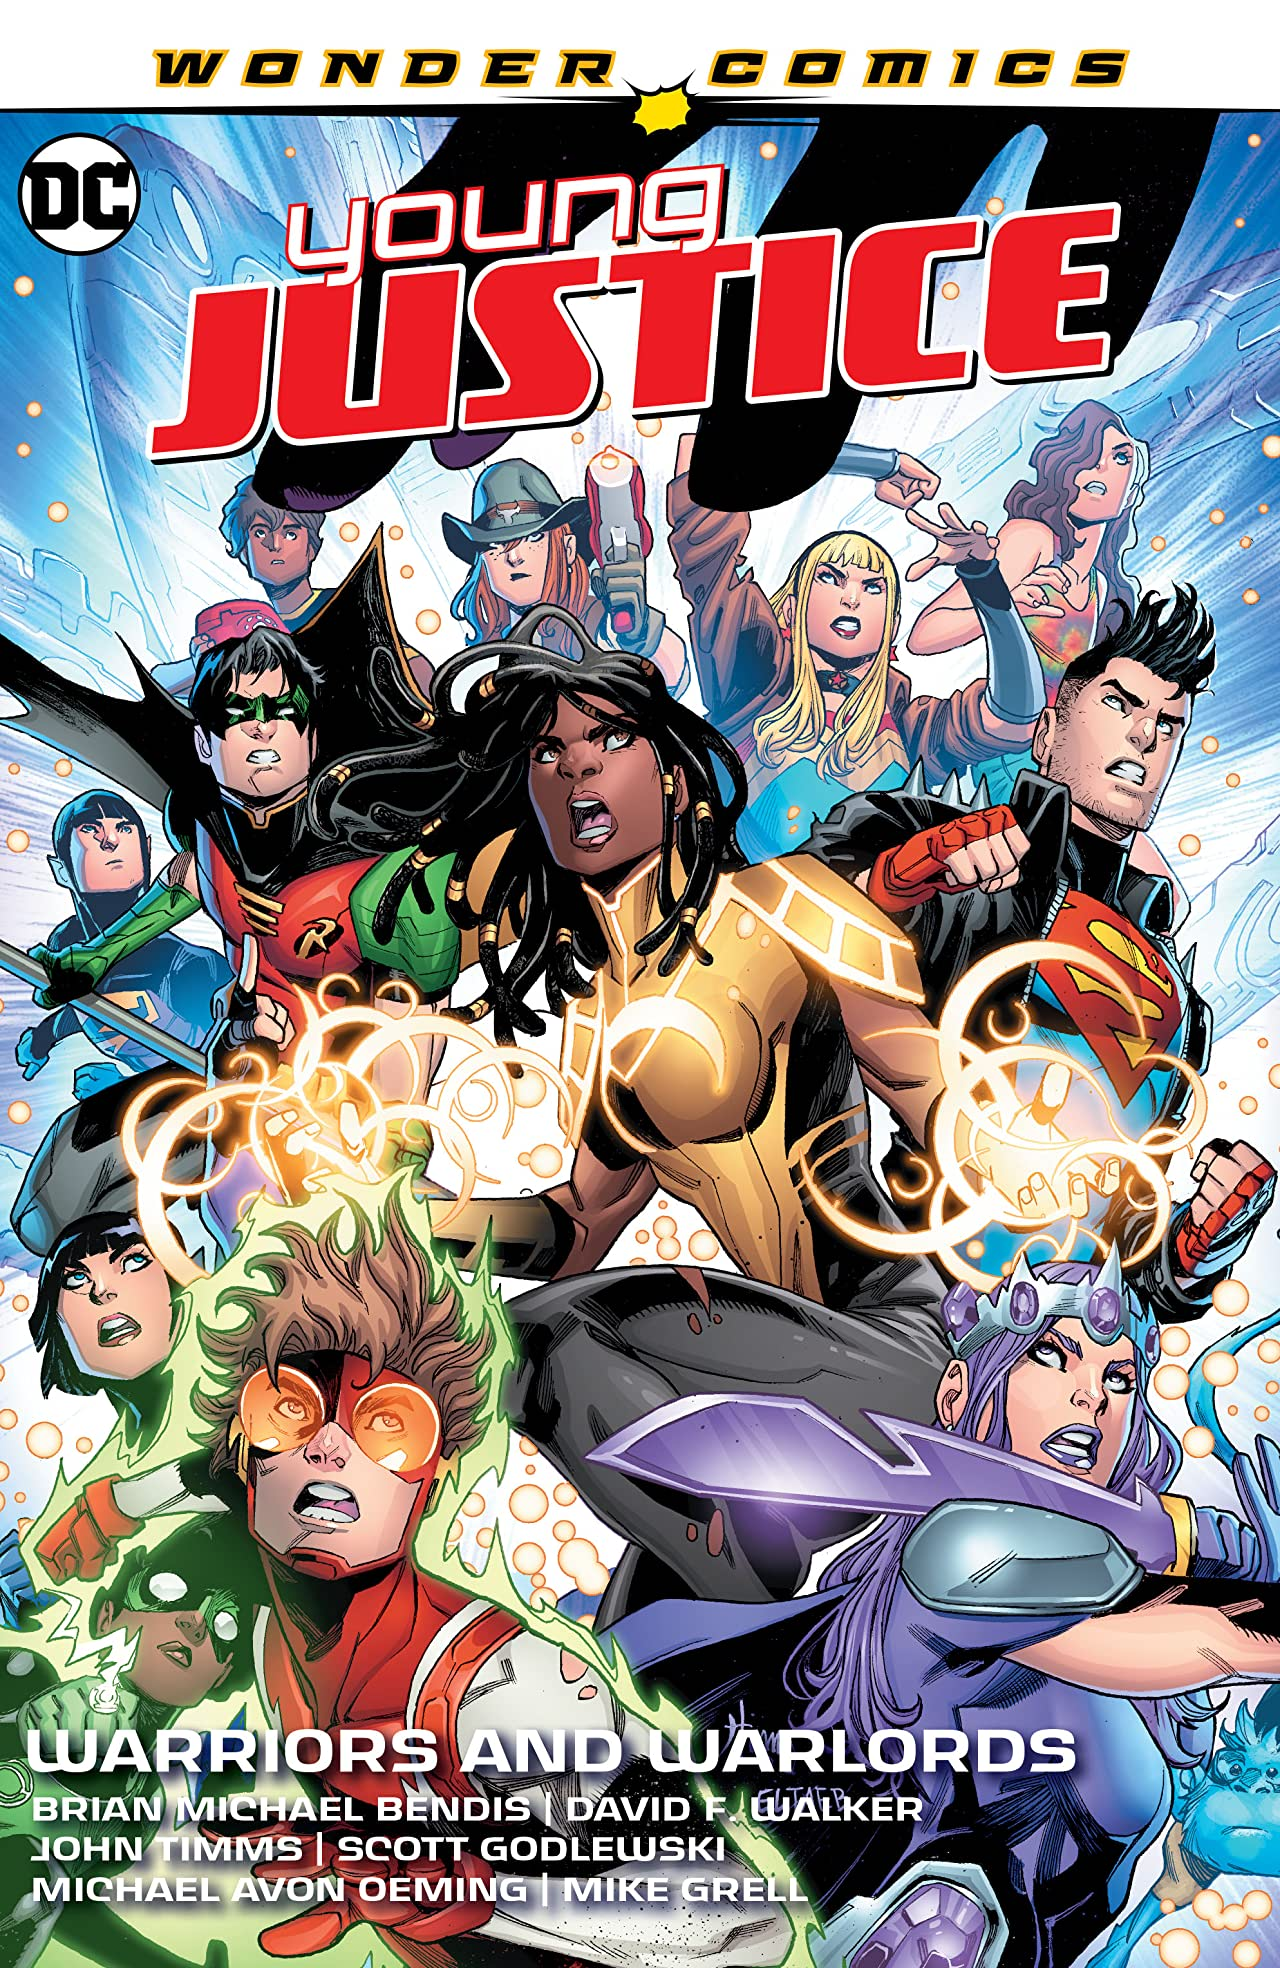 Young Justice: Warriors and Warlords Vol. 2